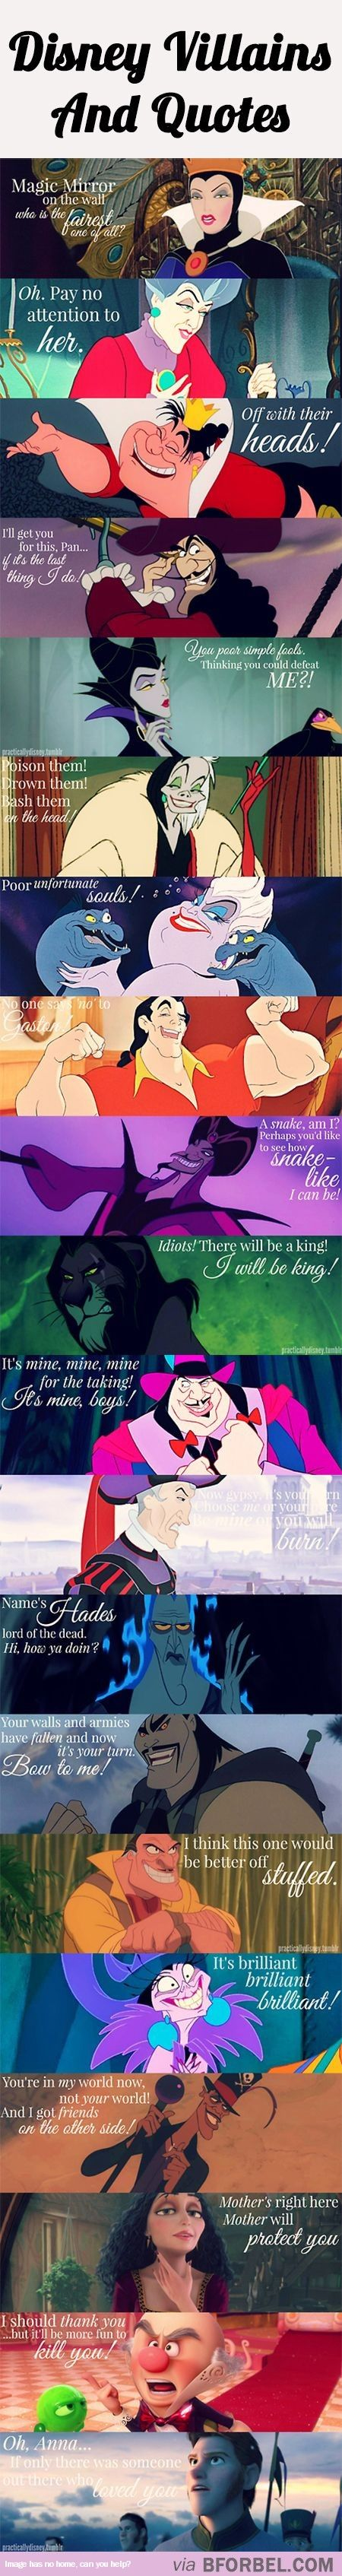 20 Disney Villains And Their Infamous Quotes….  Can I just say I heard every single one of their voices reading the quotes in my head